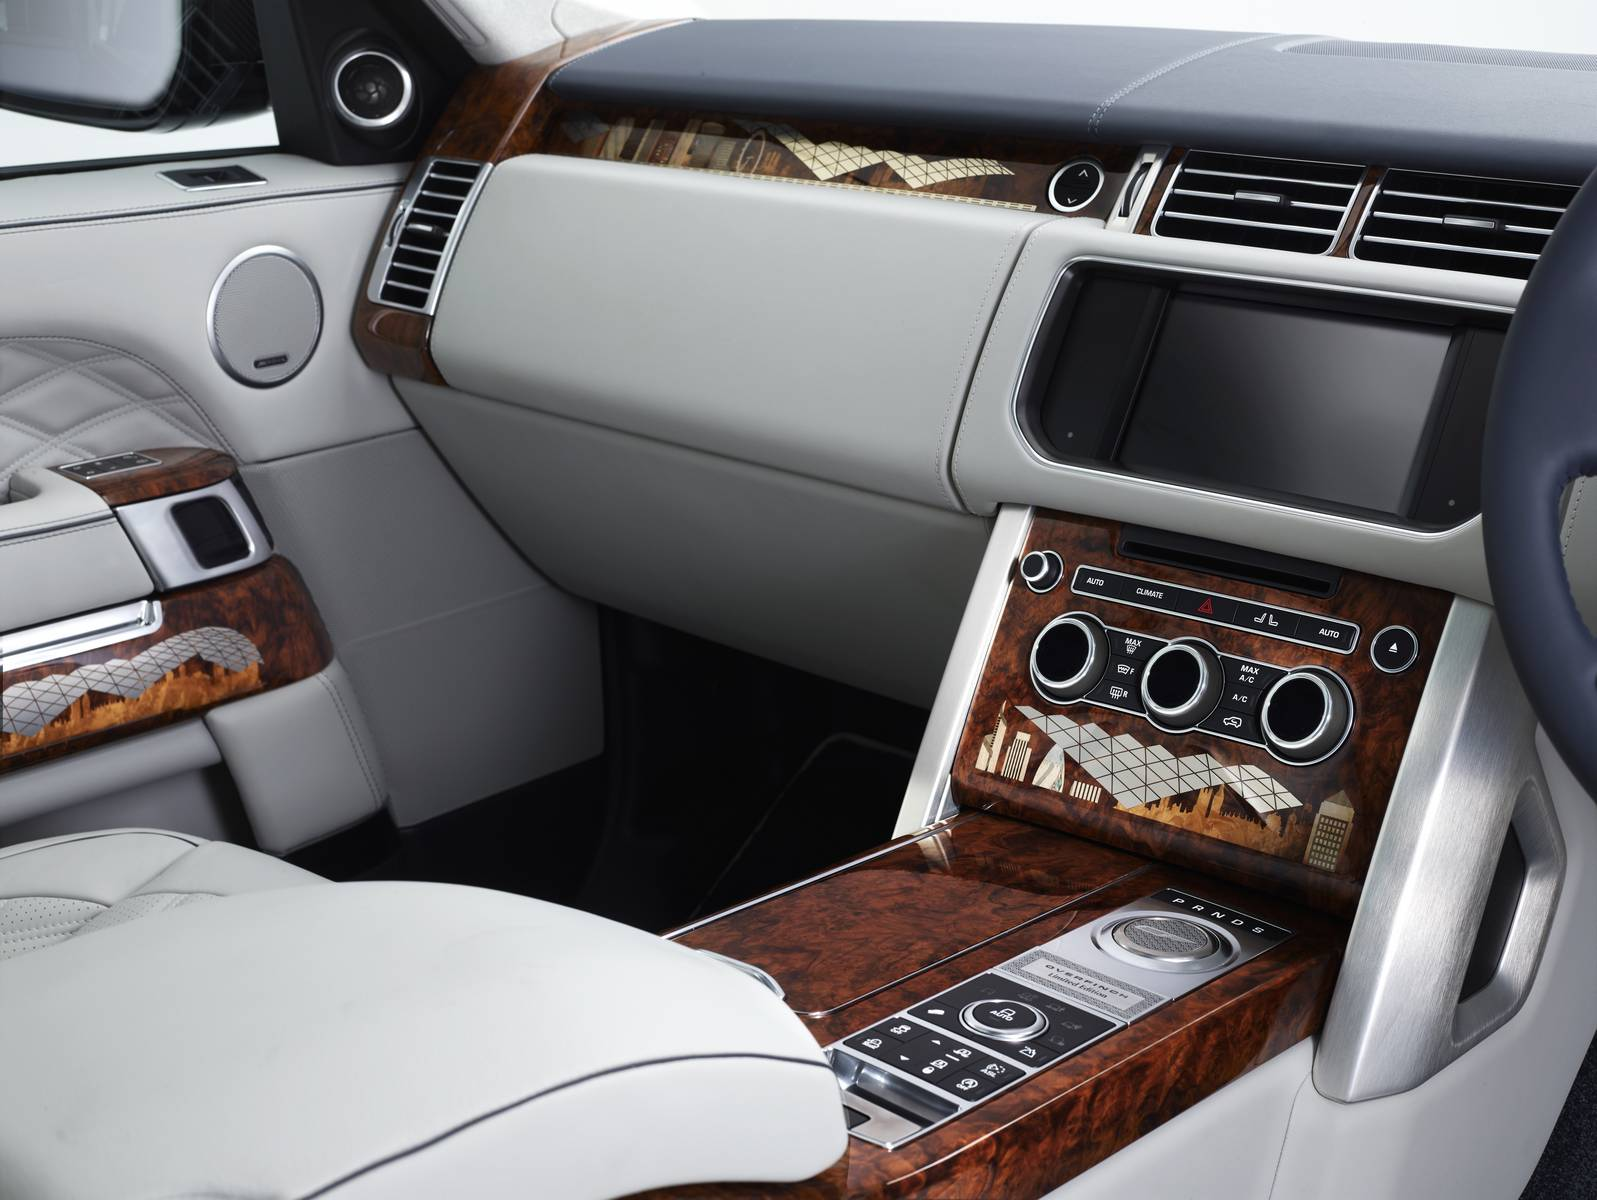 Official: 1 of 1 Overfinch Range Rover London Edition, £249,990 ...